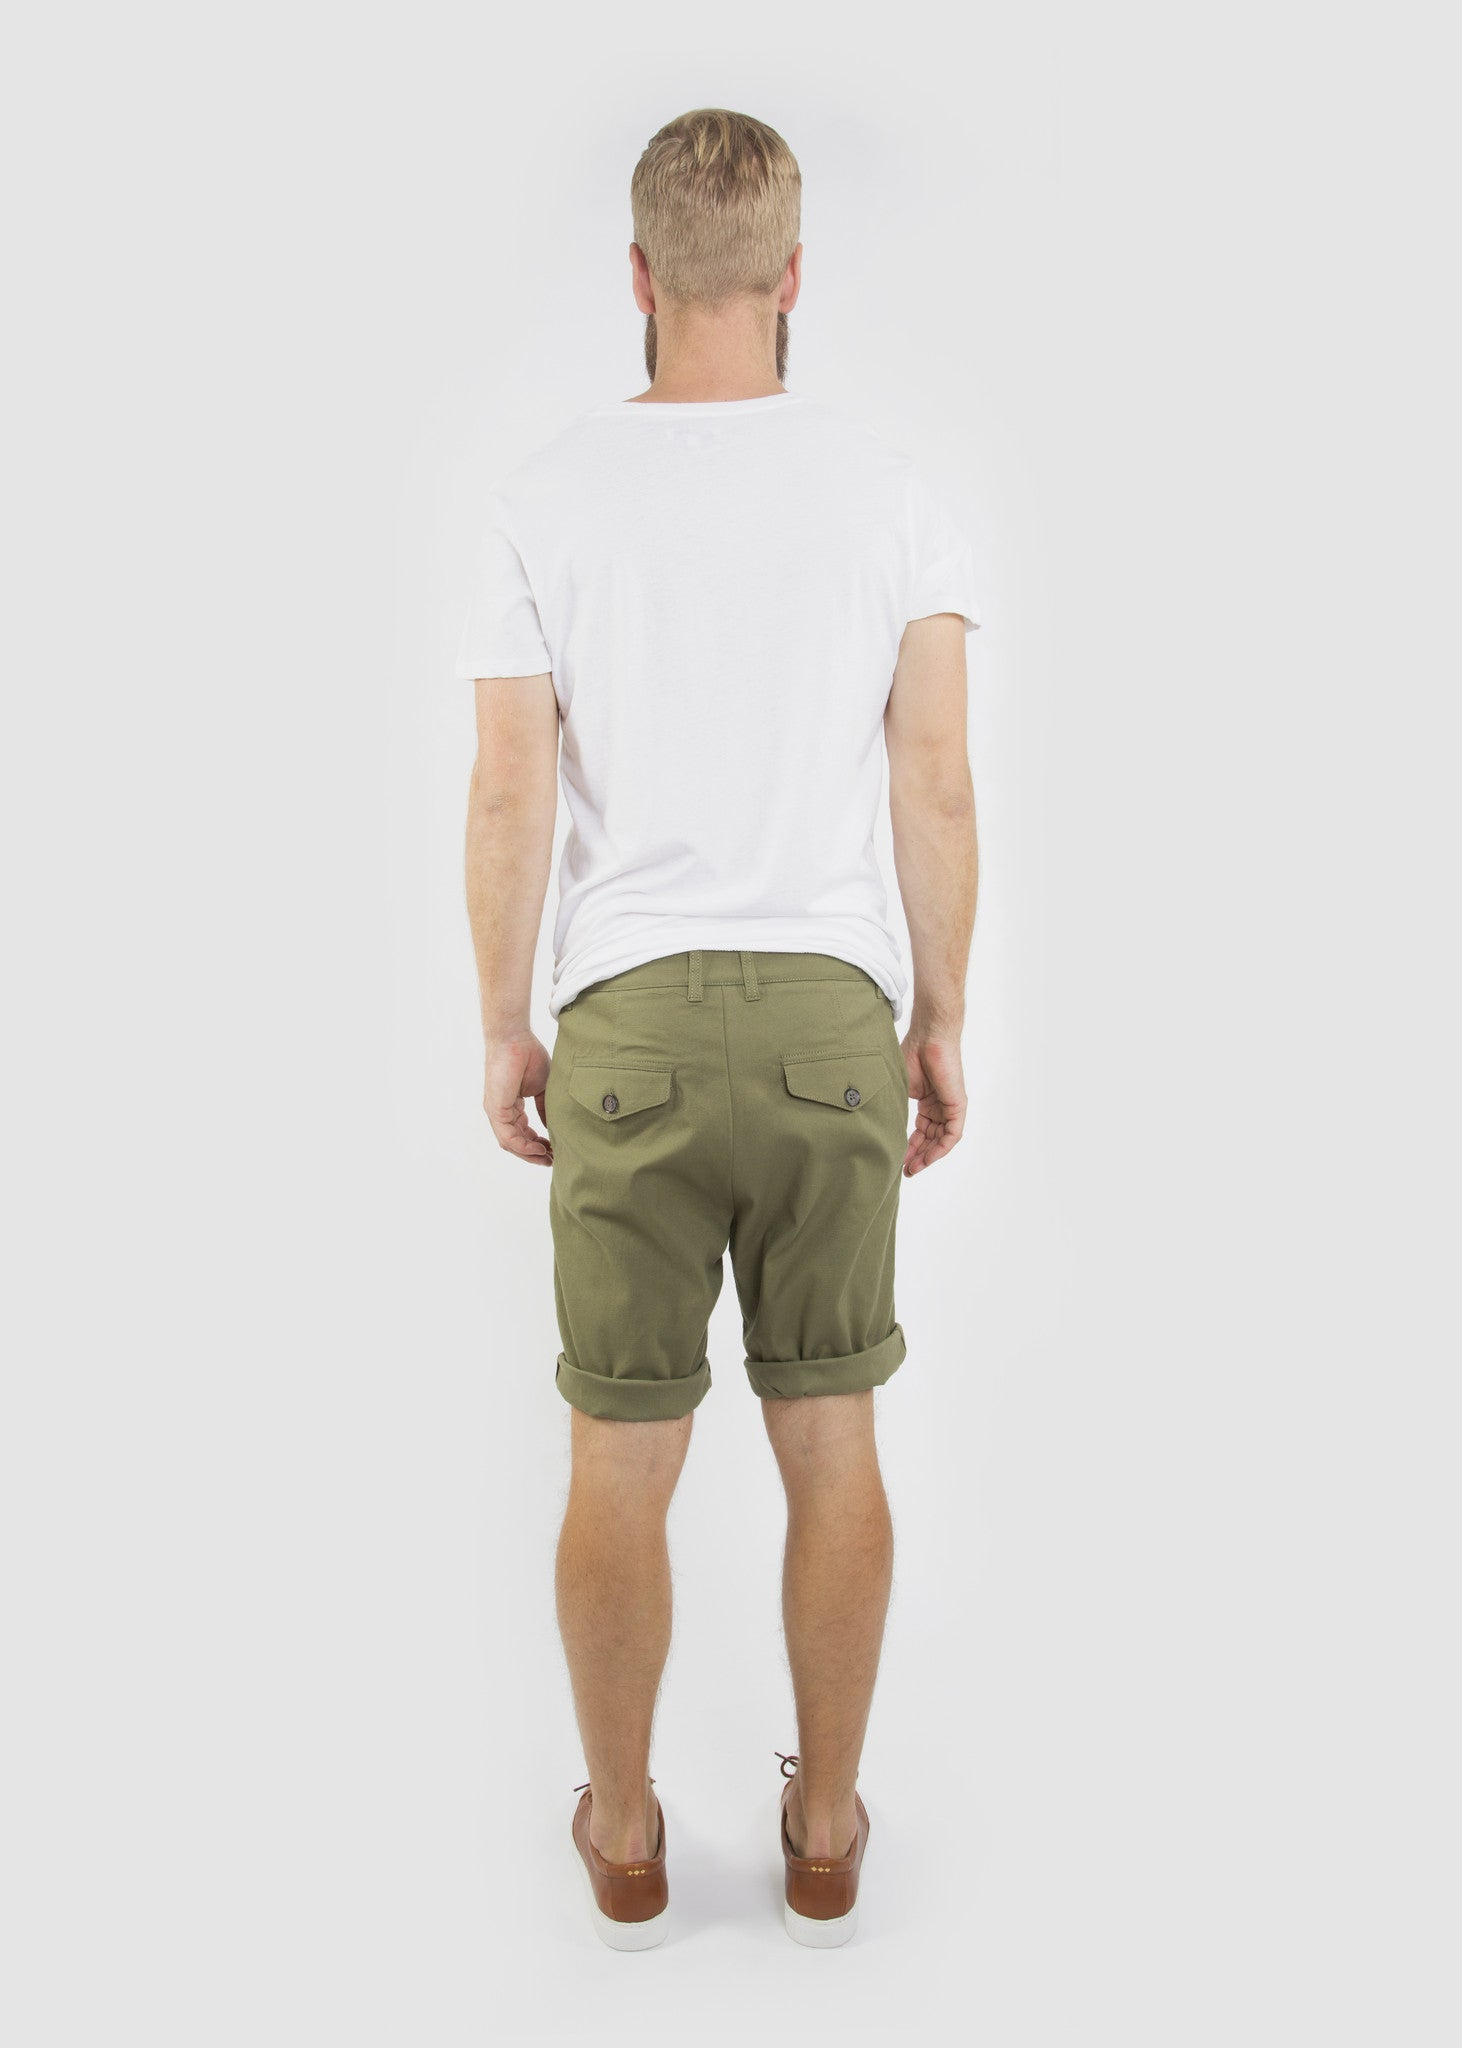 TWR Shorts Light Army Green